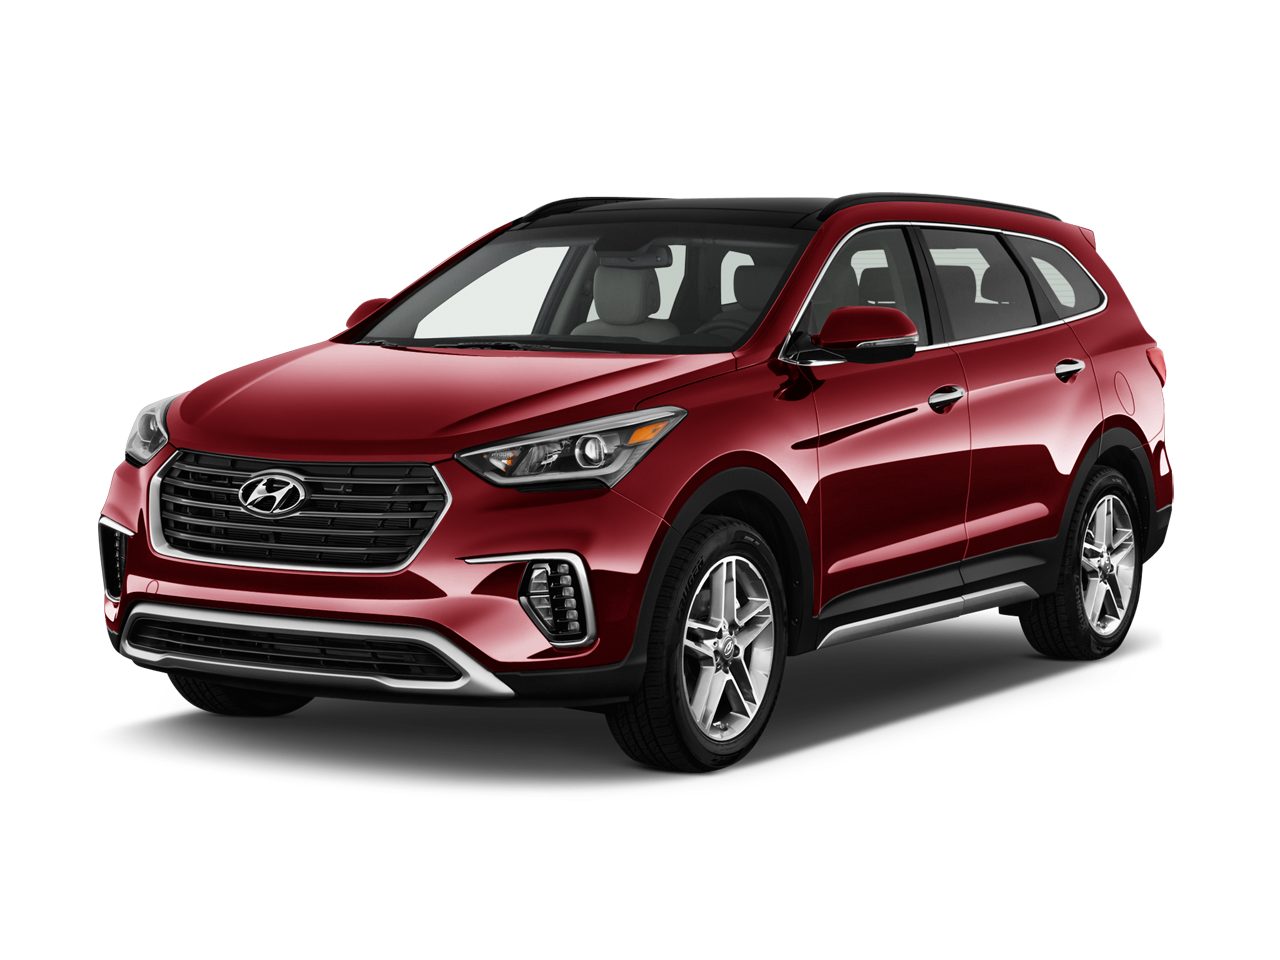 new hyundai santa fe for sale randy wise auto. Black Bedroom Furniture Sets. Home Design Ideas